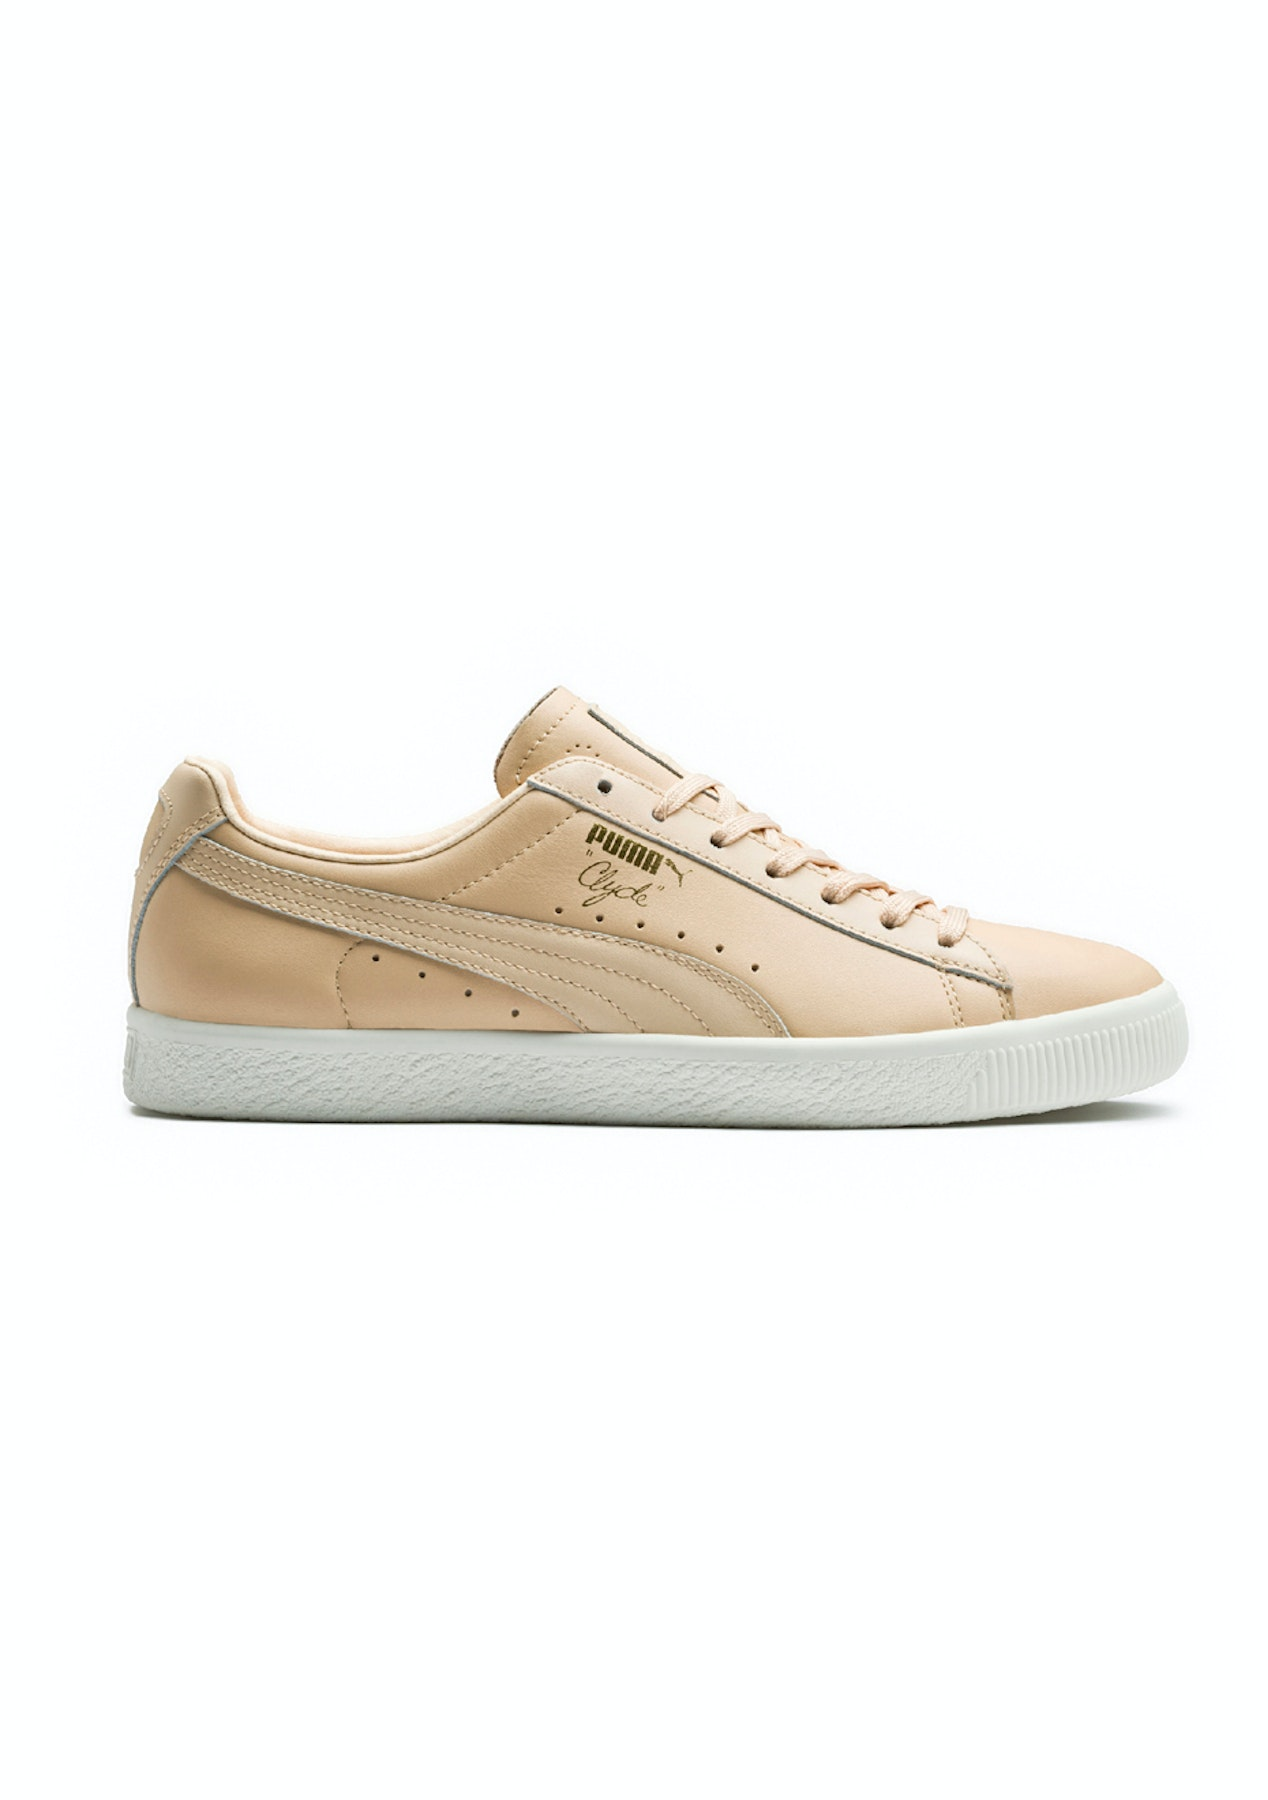 low priced 88121 904eb Puma Womens - Clyde - Natural